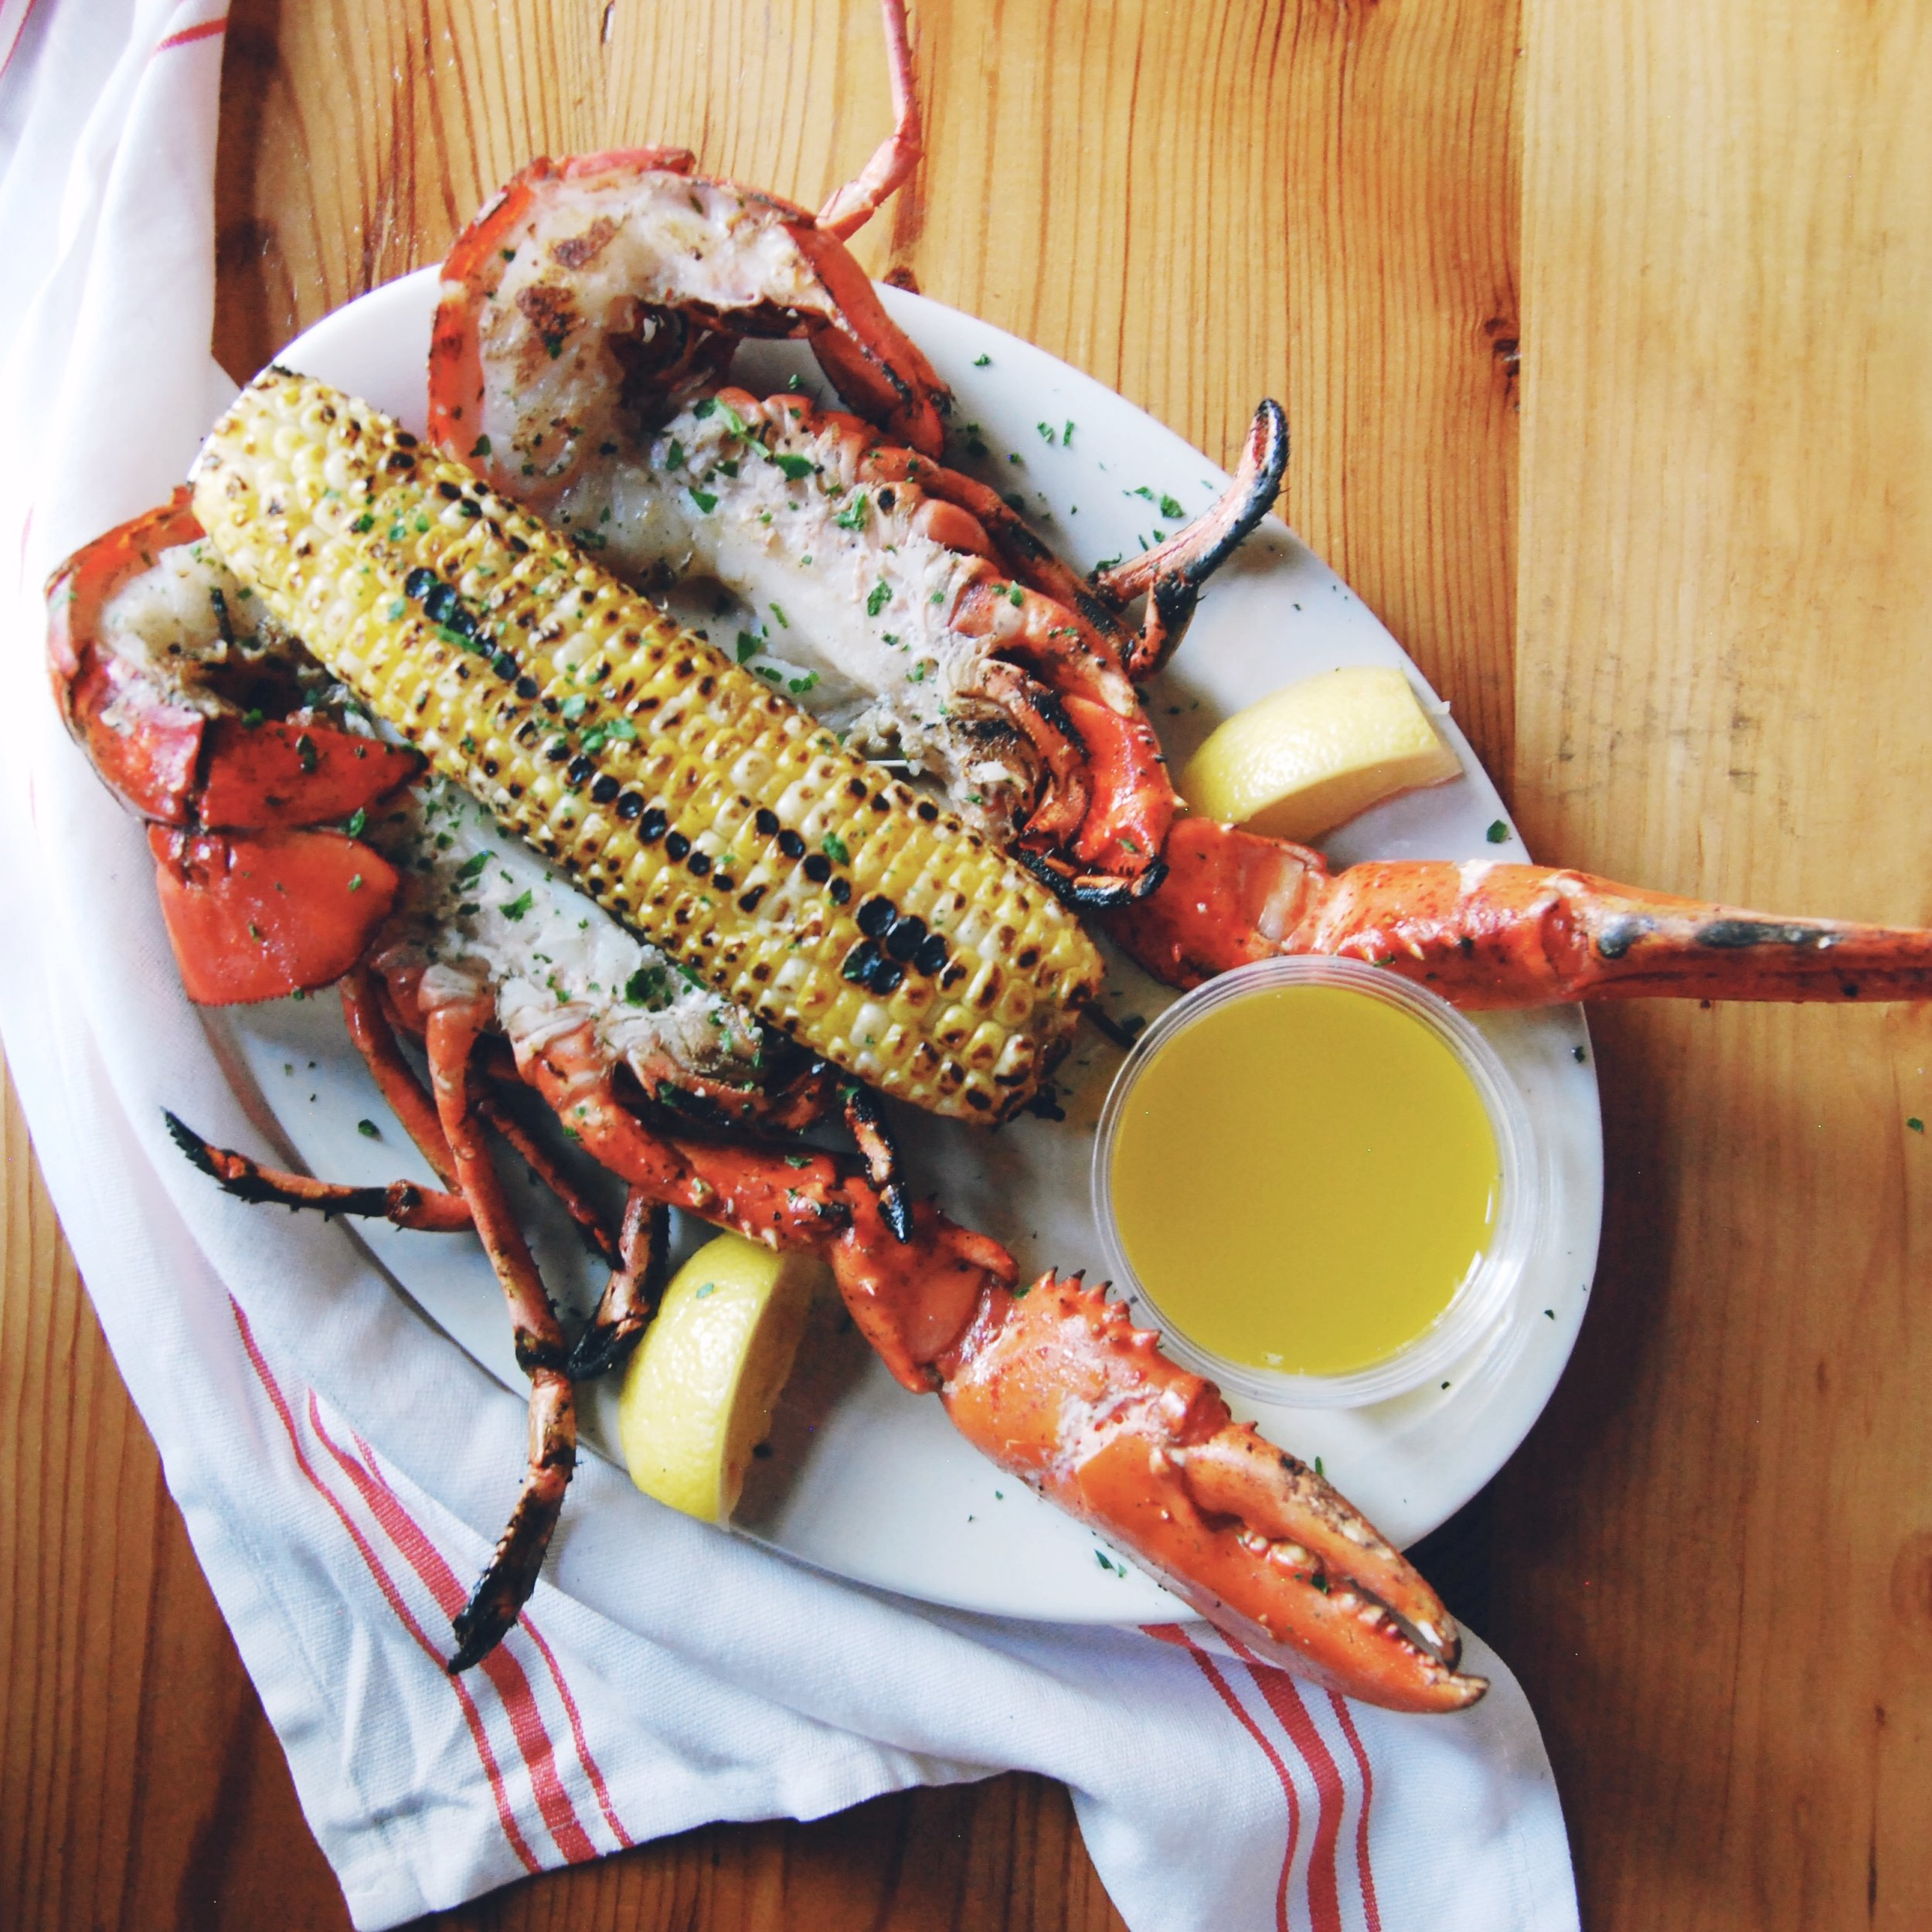 GRILLED LOBSTER & CORN   At most New England seafood restaurants you'll find boiled lobster. Here, we butterfly and grill ours, enhancing its natural flavor. Not only is it delicious, but by opening up the lobster, we've done most of the work for you that usually comes with ordering lobster!